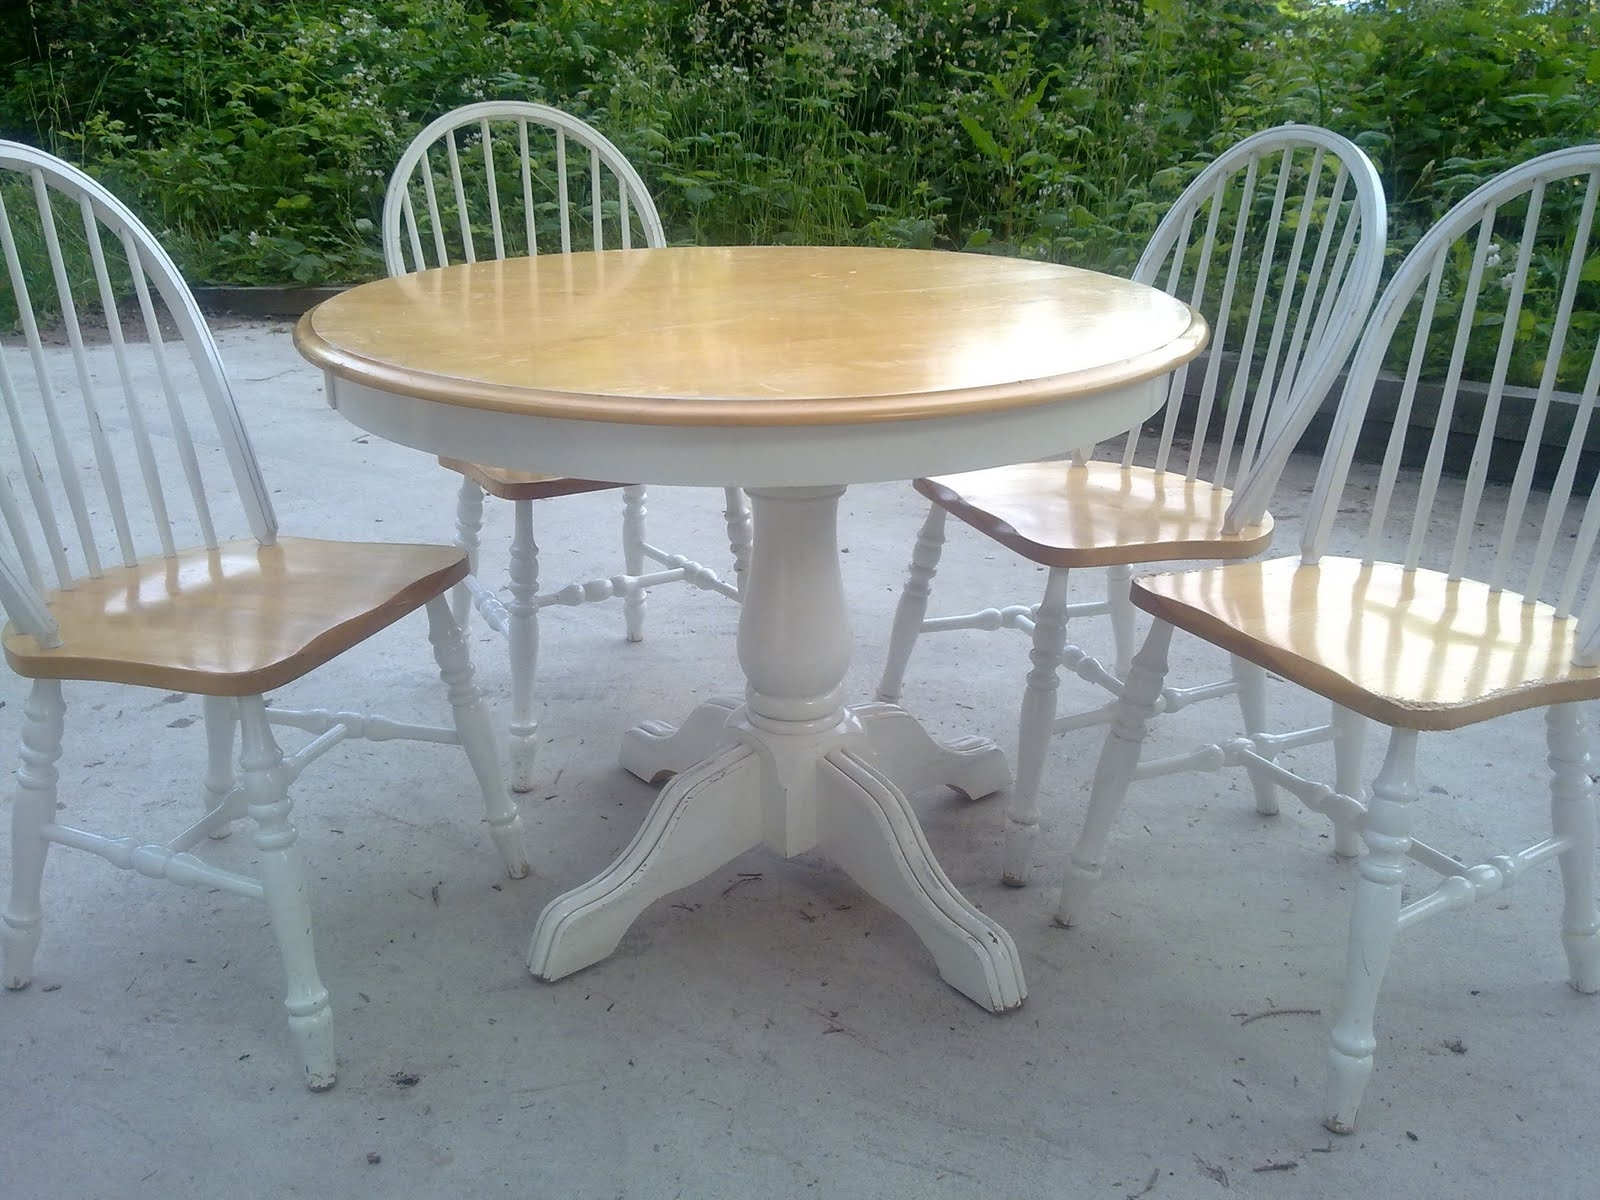 2018 Shabby Chic Cream Dining Tables And Chairs Throughout Kitchen Chairs: Kitchen Dining Tables And Chairs (View 20 of 25)